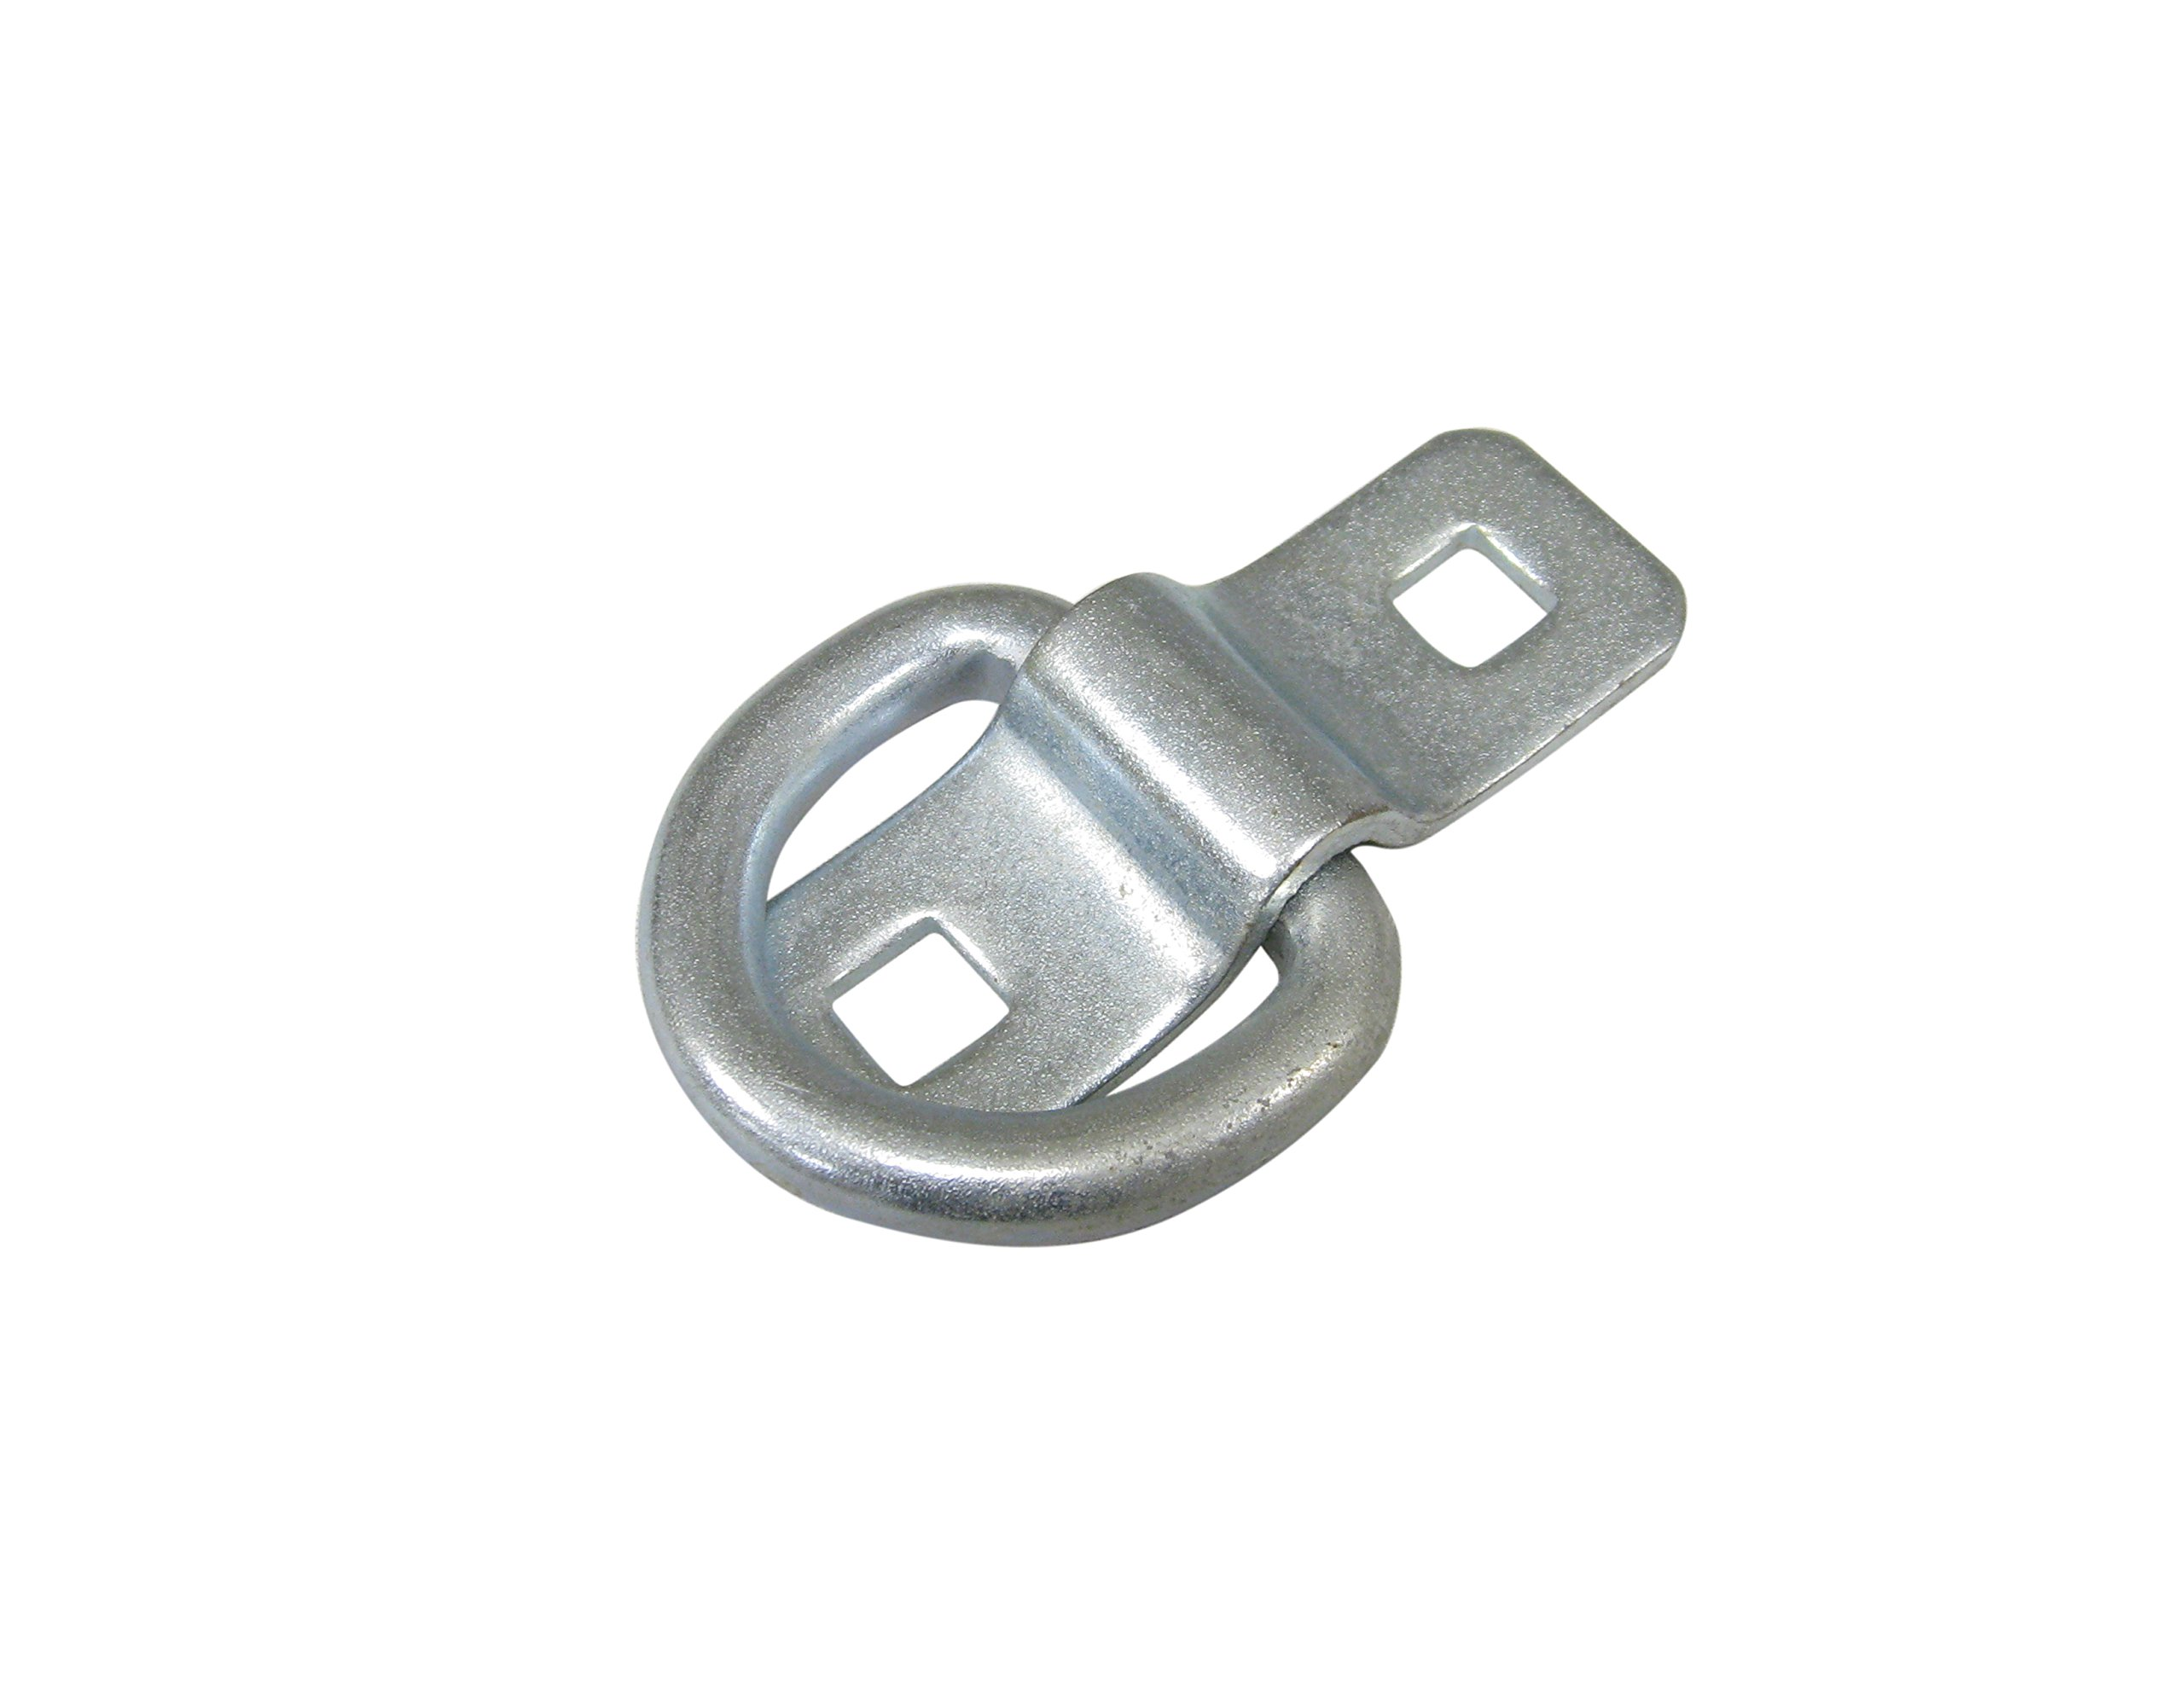 Progrip 822610 Truck and Trailer Cargo Surface Mount Tie Down with D Ring: Medium Duty (Pack of 1)